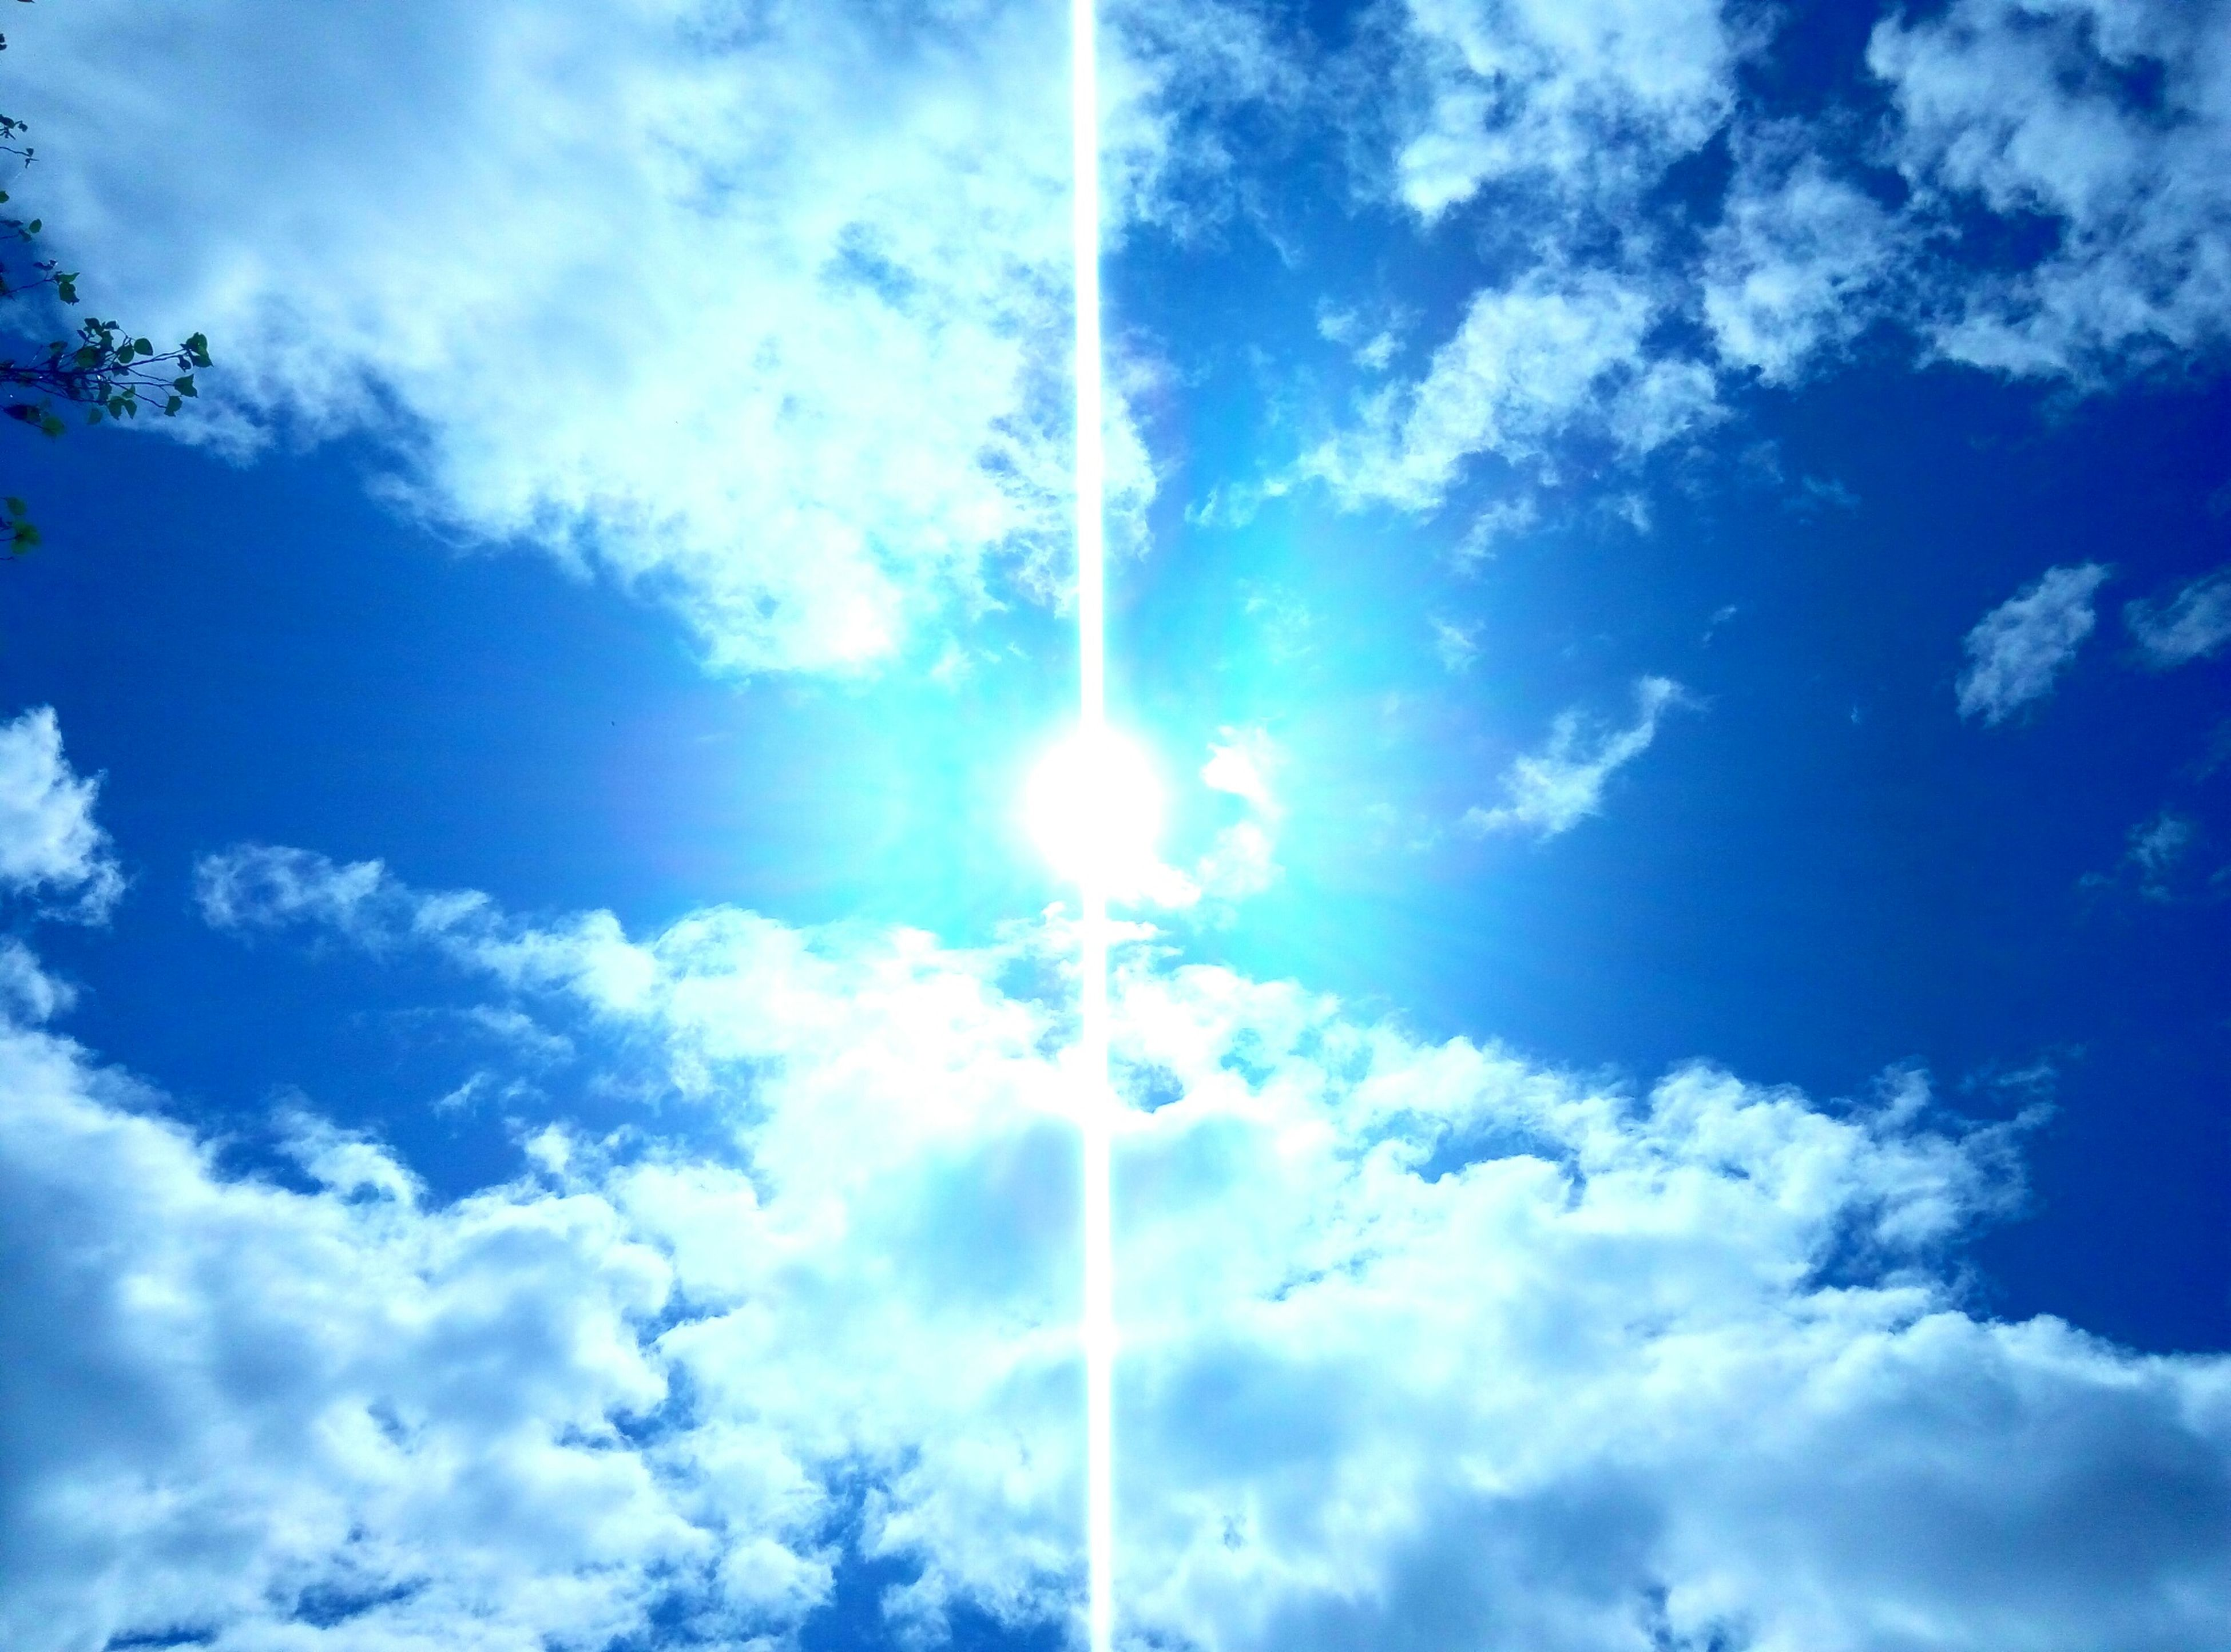 low angle view, sun, sunbeam, sky, blue, cloud - sky, sunlight, lens flare, beauty in nature, nature, tranquility, cloud, sky only, scenics, bright, sunny, tranquil scene, day, cloudy, vapor trail